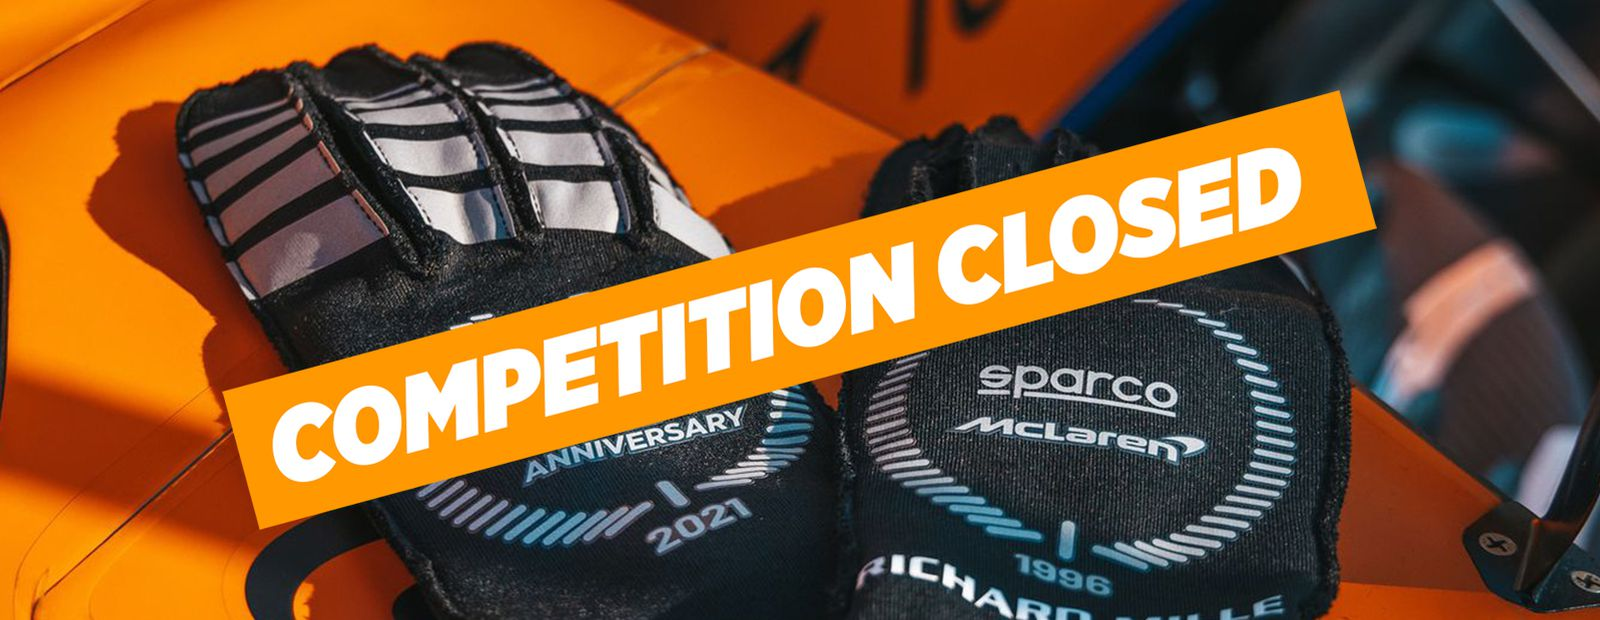 Win a pair of Sparco race gloves signed by Lando Norris